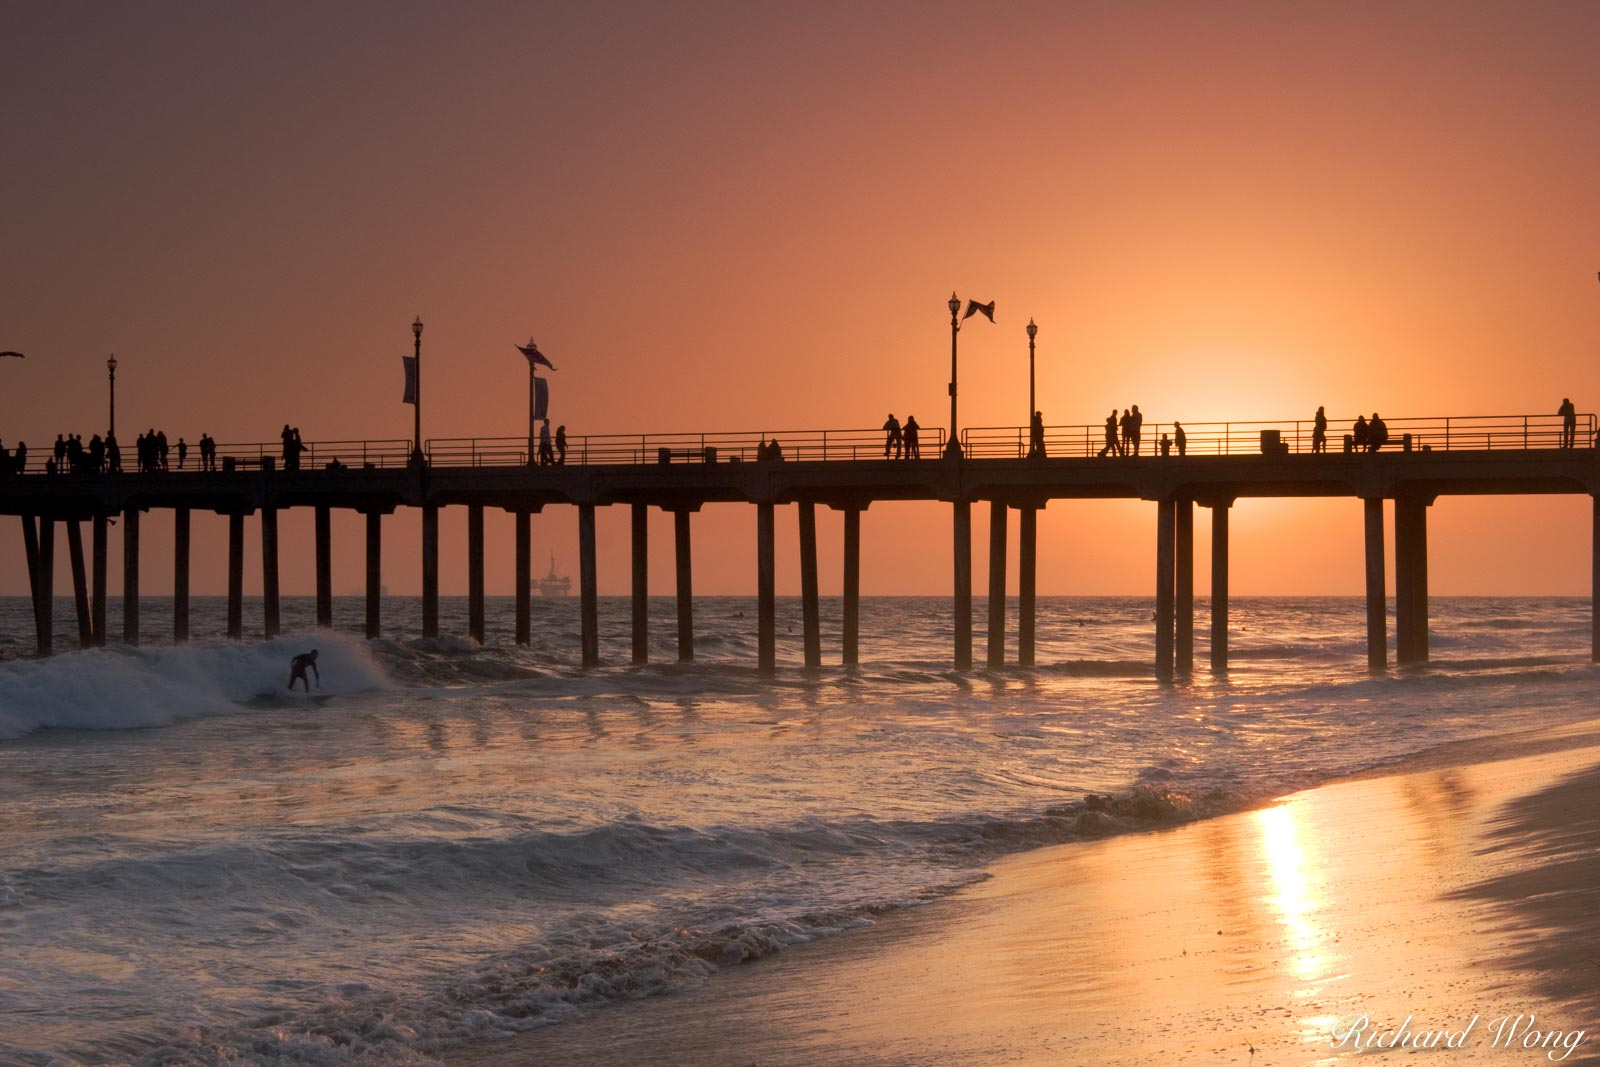 Peter Lik California Dreaming Style Photo, Surfer Riding Wave at Sunset Next to Huntington Beach Pier, California, photo